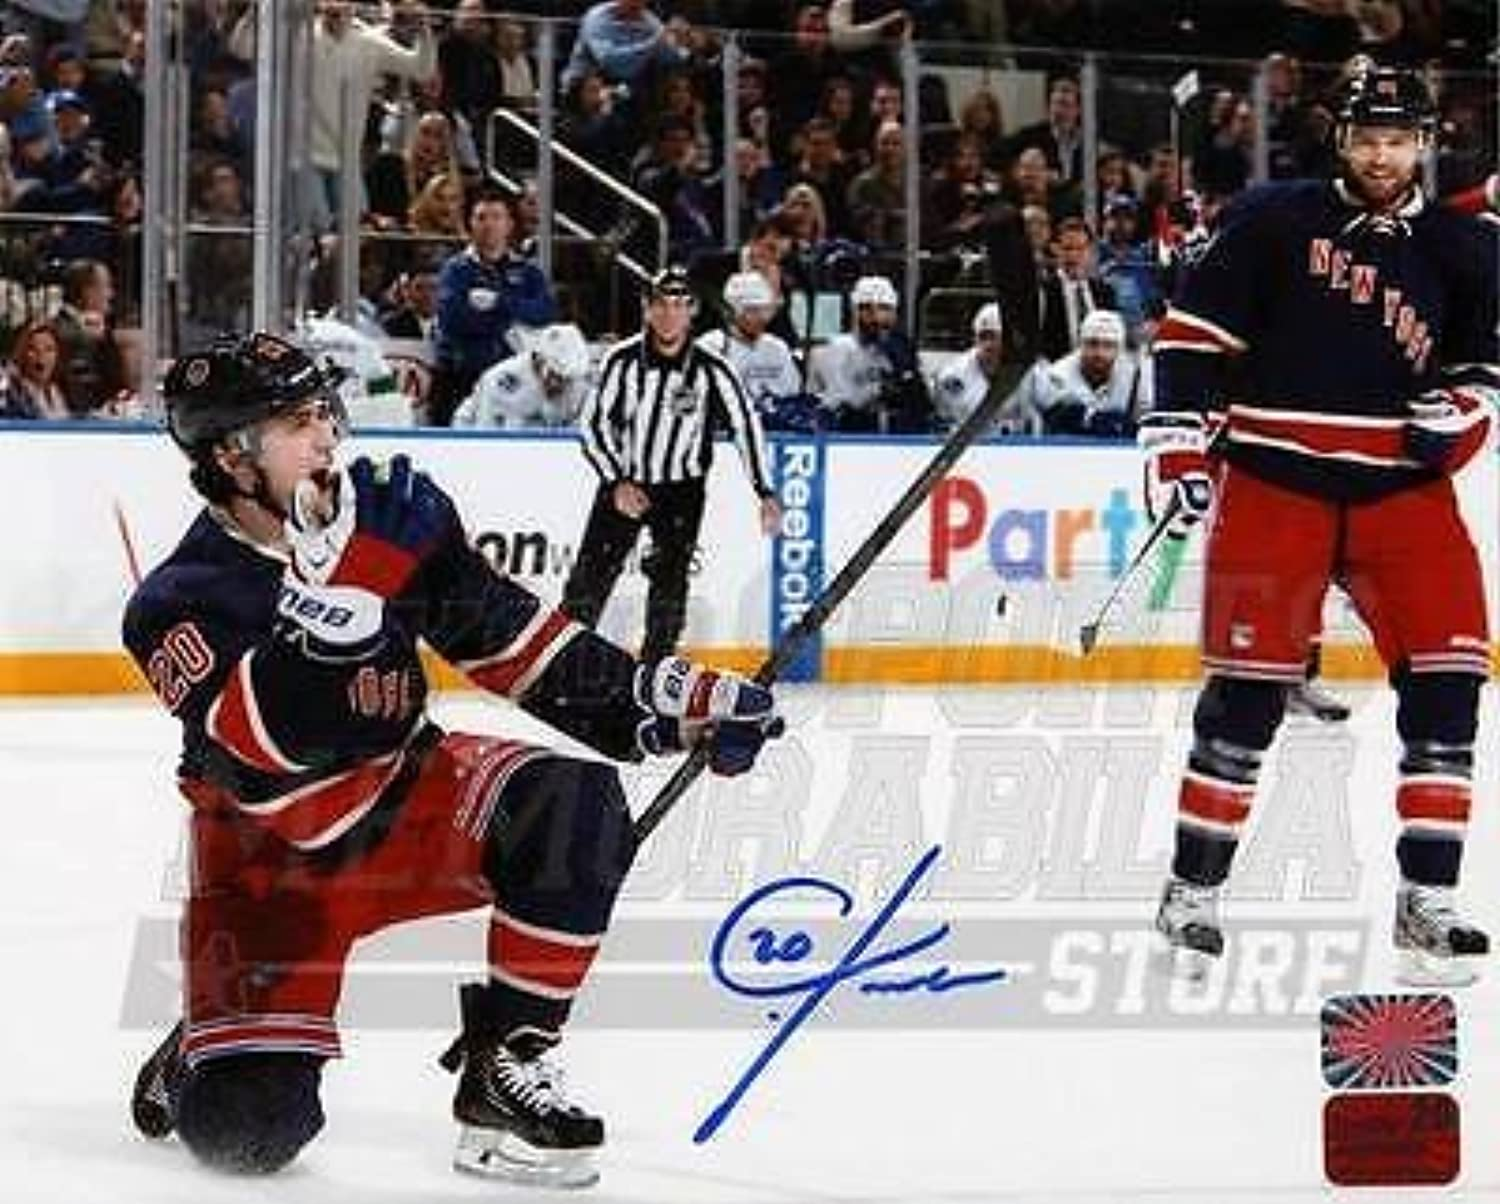 Chris Kreider New York Rangers Signed Autographed Fist Pump Celebration 16x20